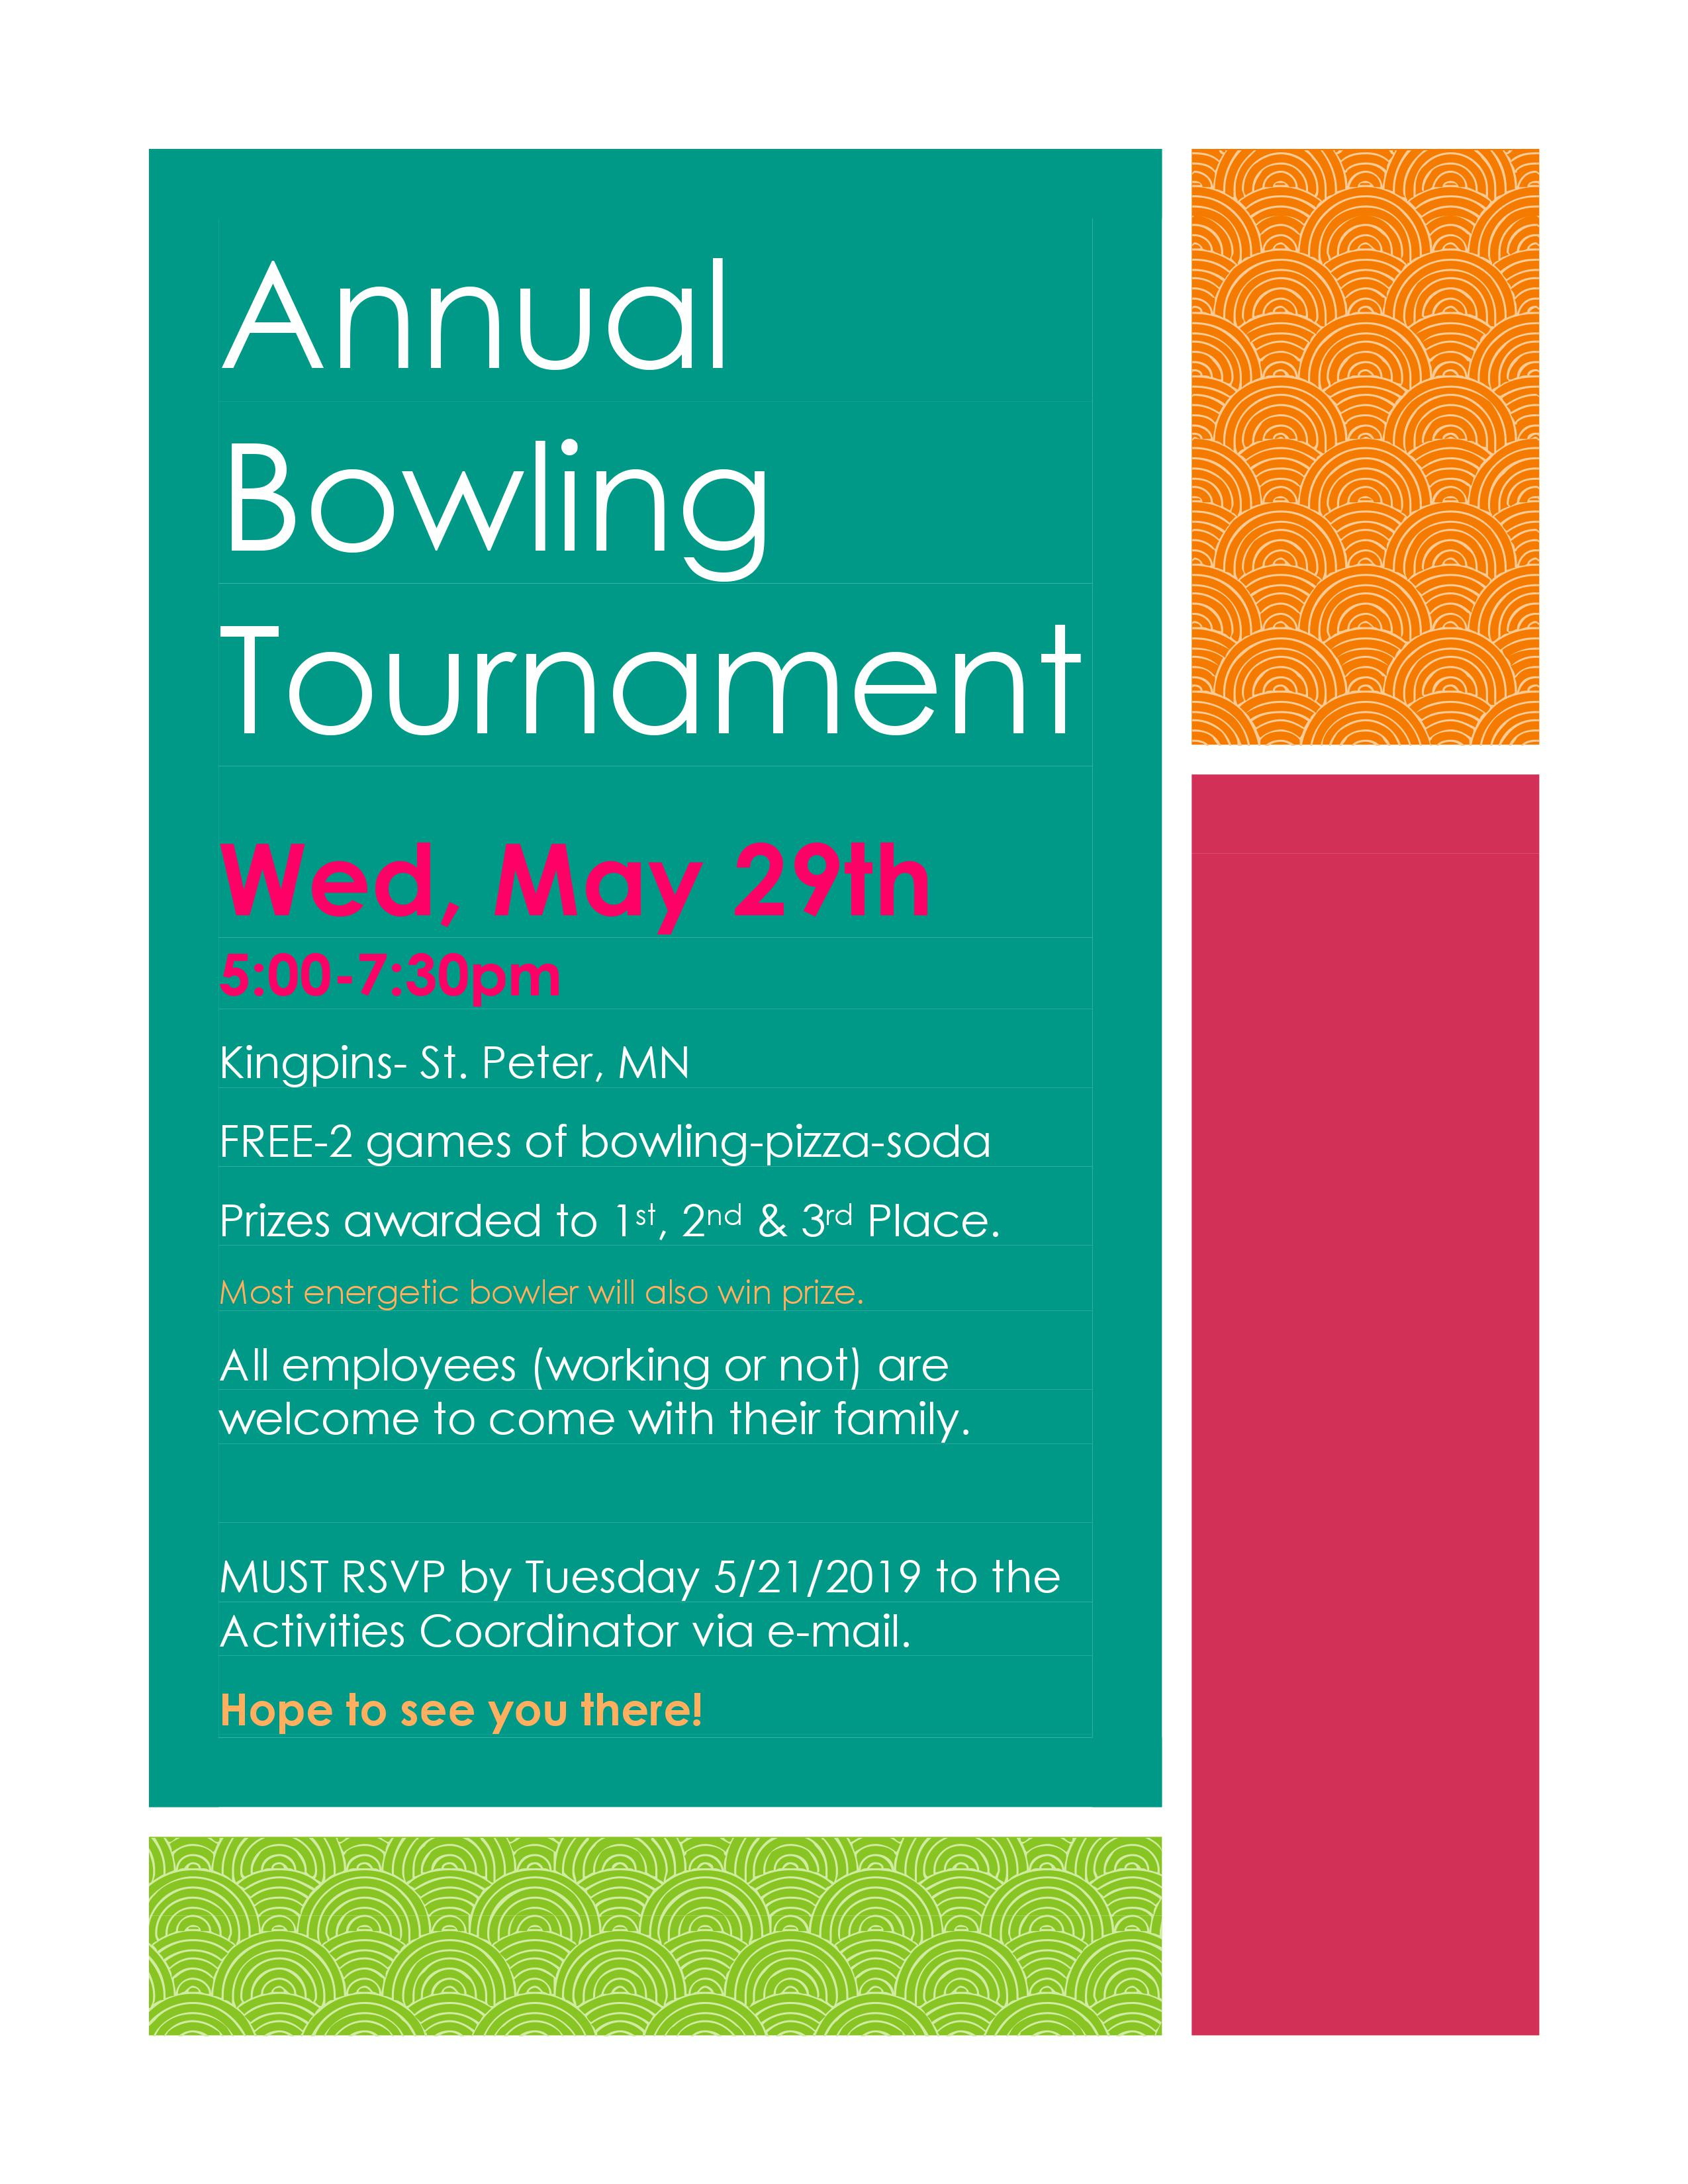 https://0201.nccdn.net/1_2/000/000/0c2/a97/Bowling-Tournament-2550x3300.jpg